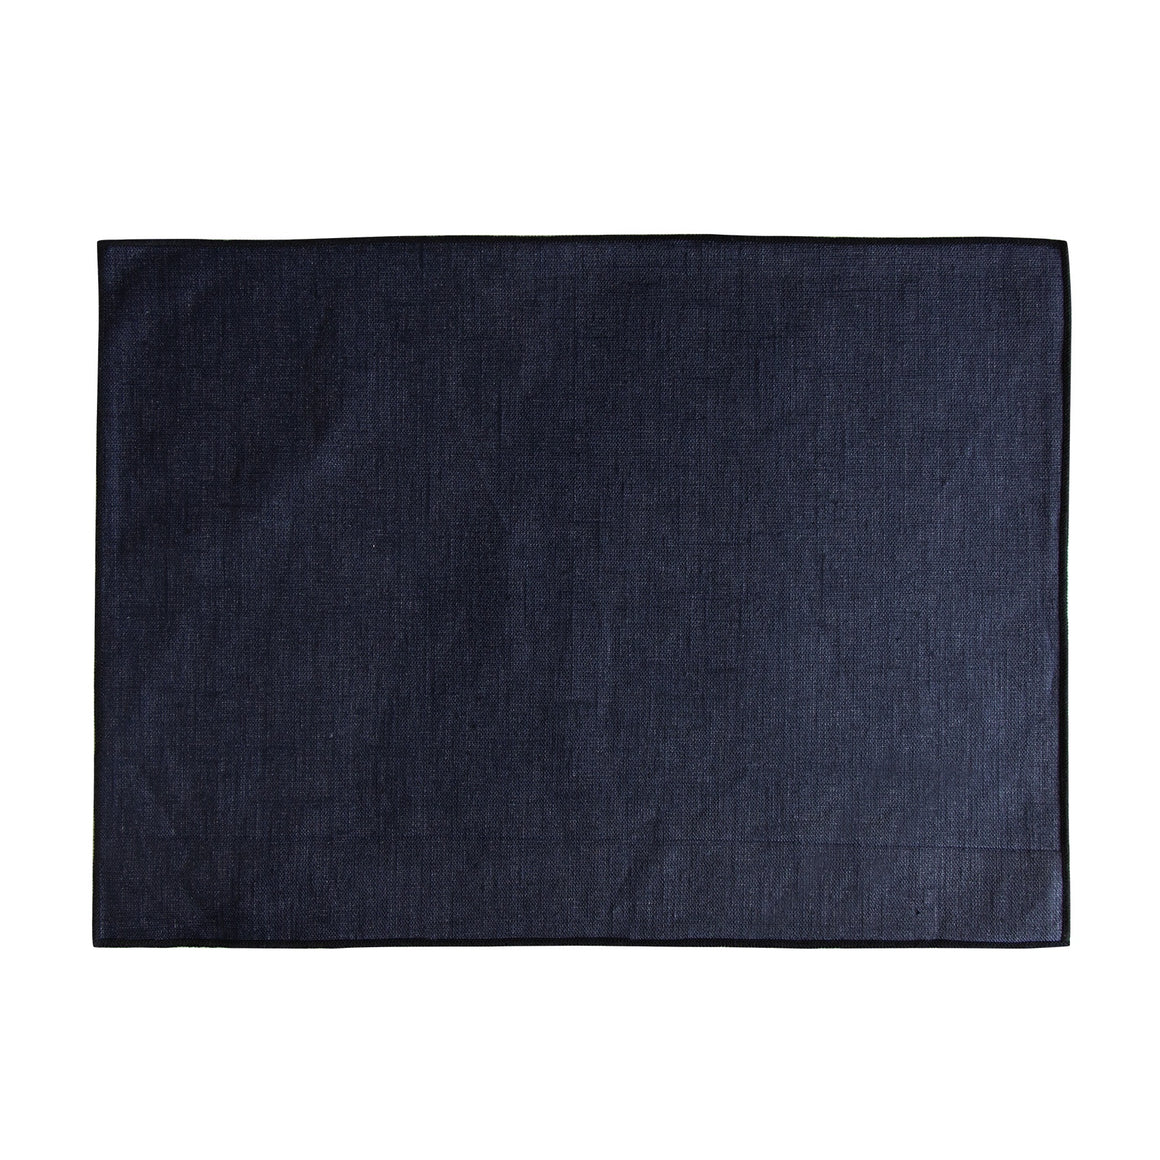 Coated Linen Placemat Indigo